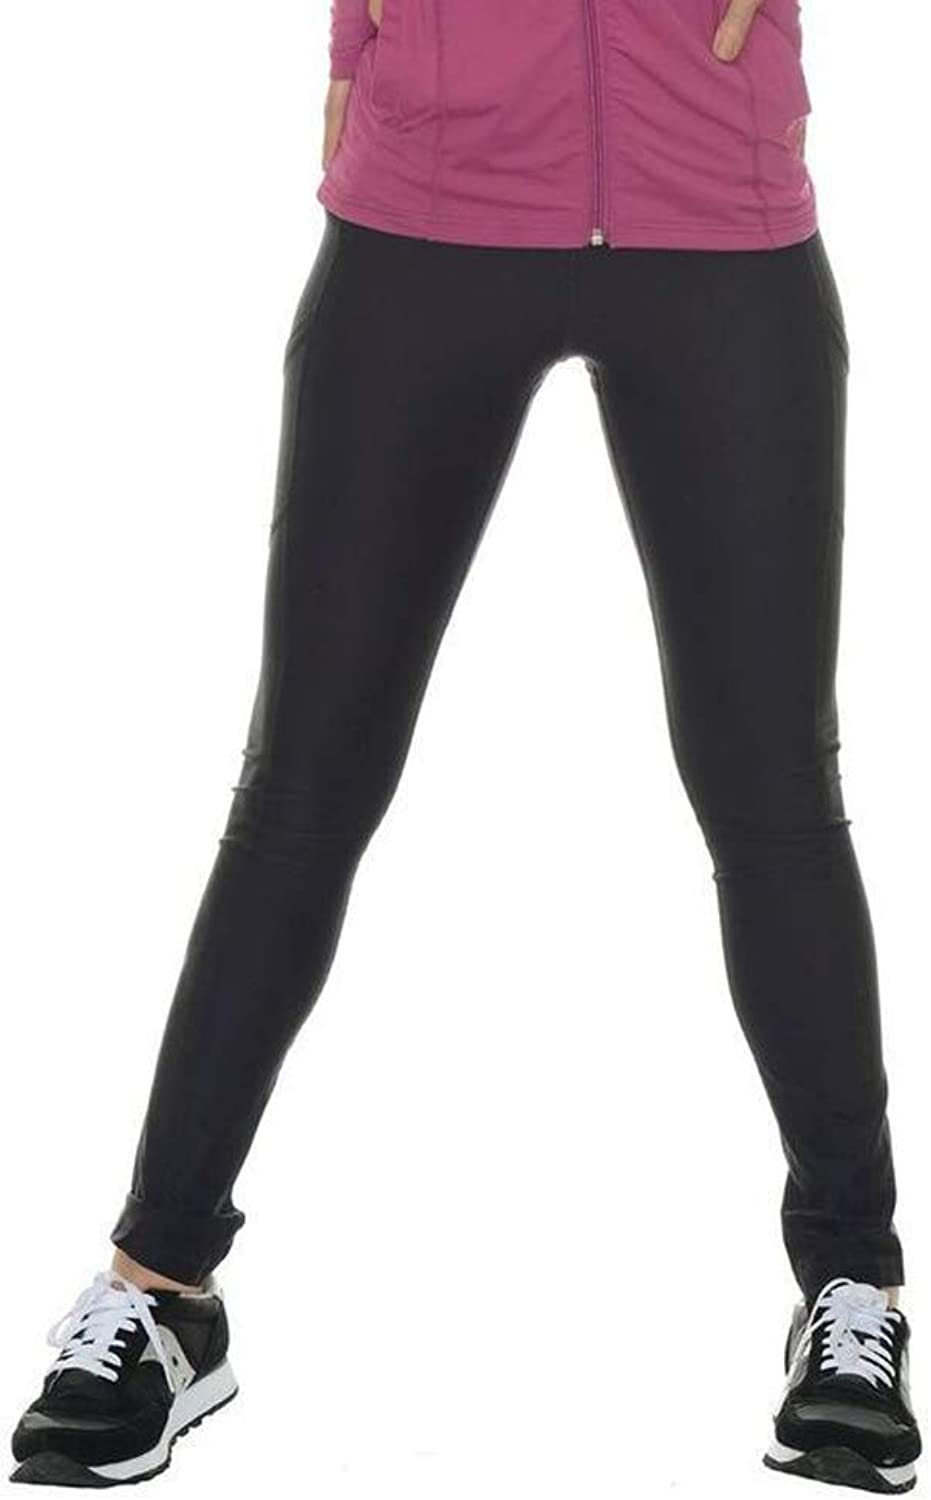 BloqUV Women's Compression No Stripe Long Tight Pants